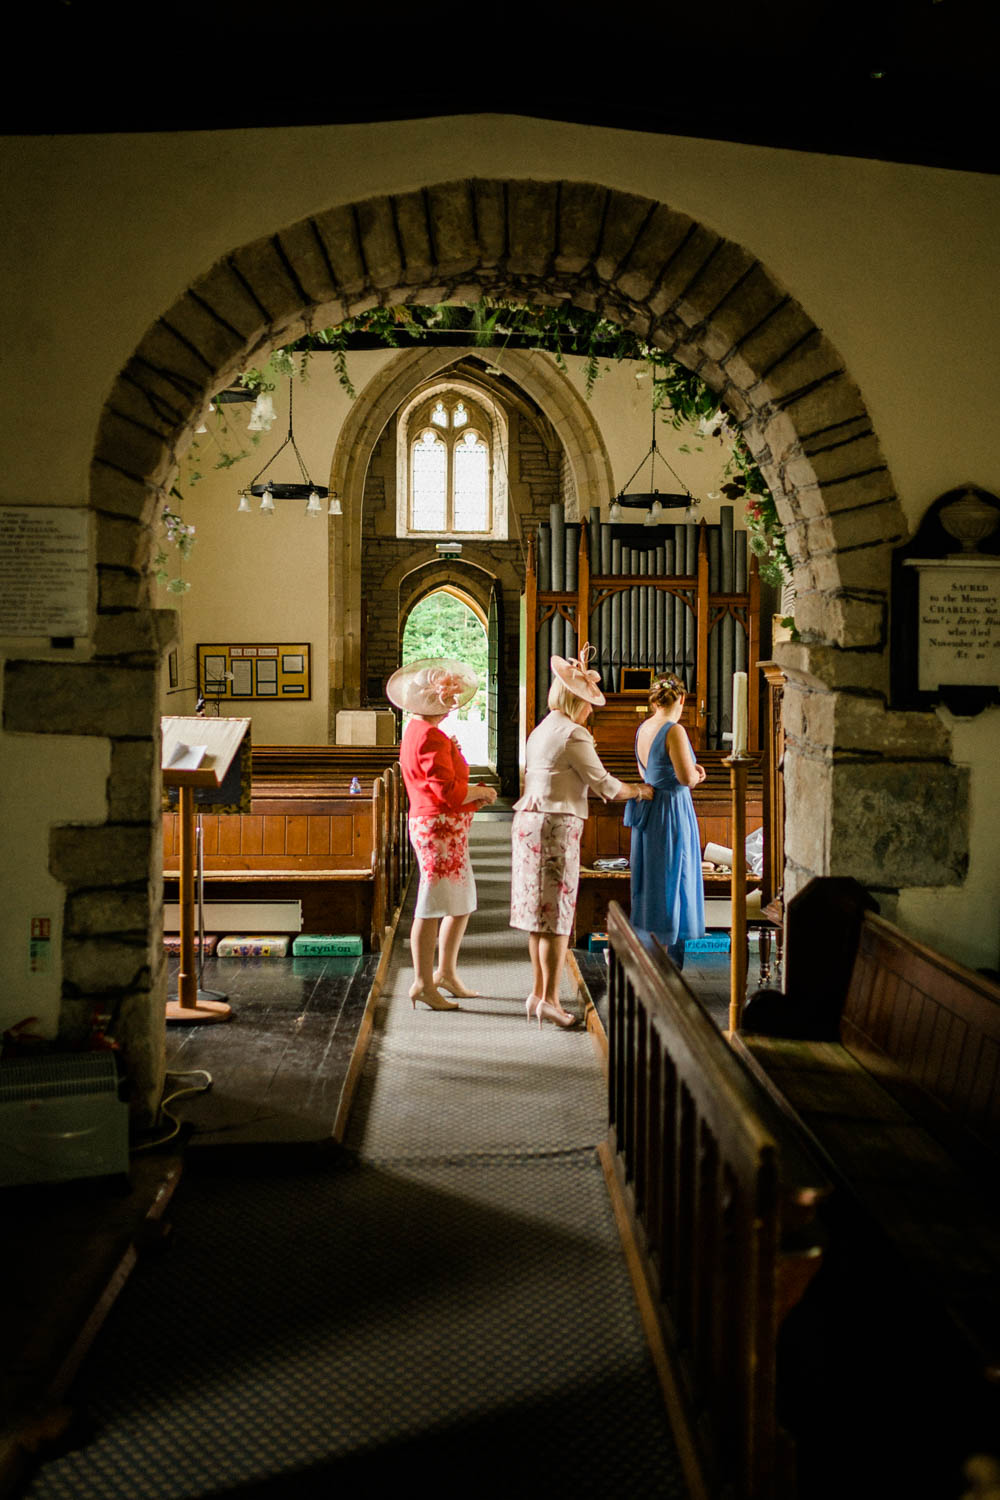 Special-Day-Photography-Hellens-Manor-Much-Marcle-Tudor-Manor-Wedding-Inside-a-Norman-church.jpg